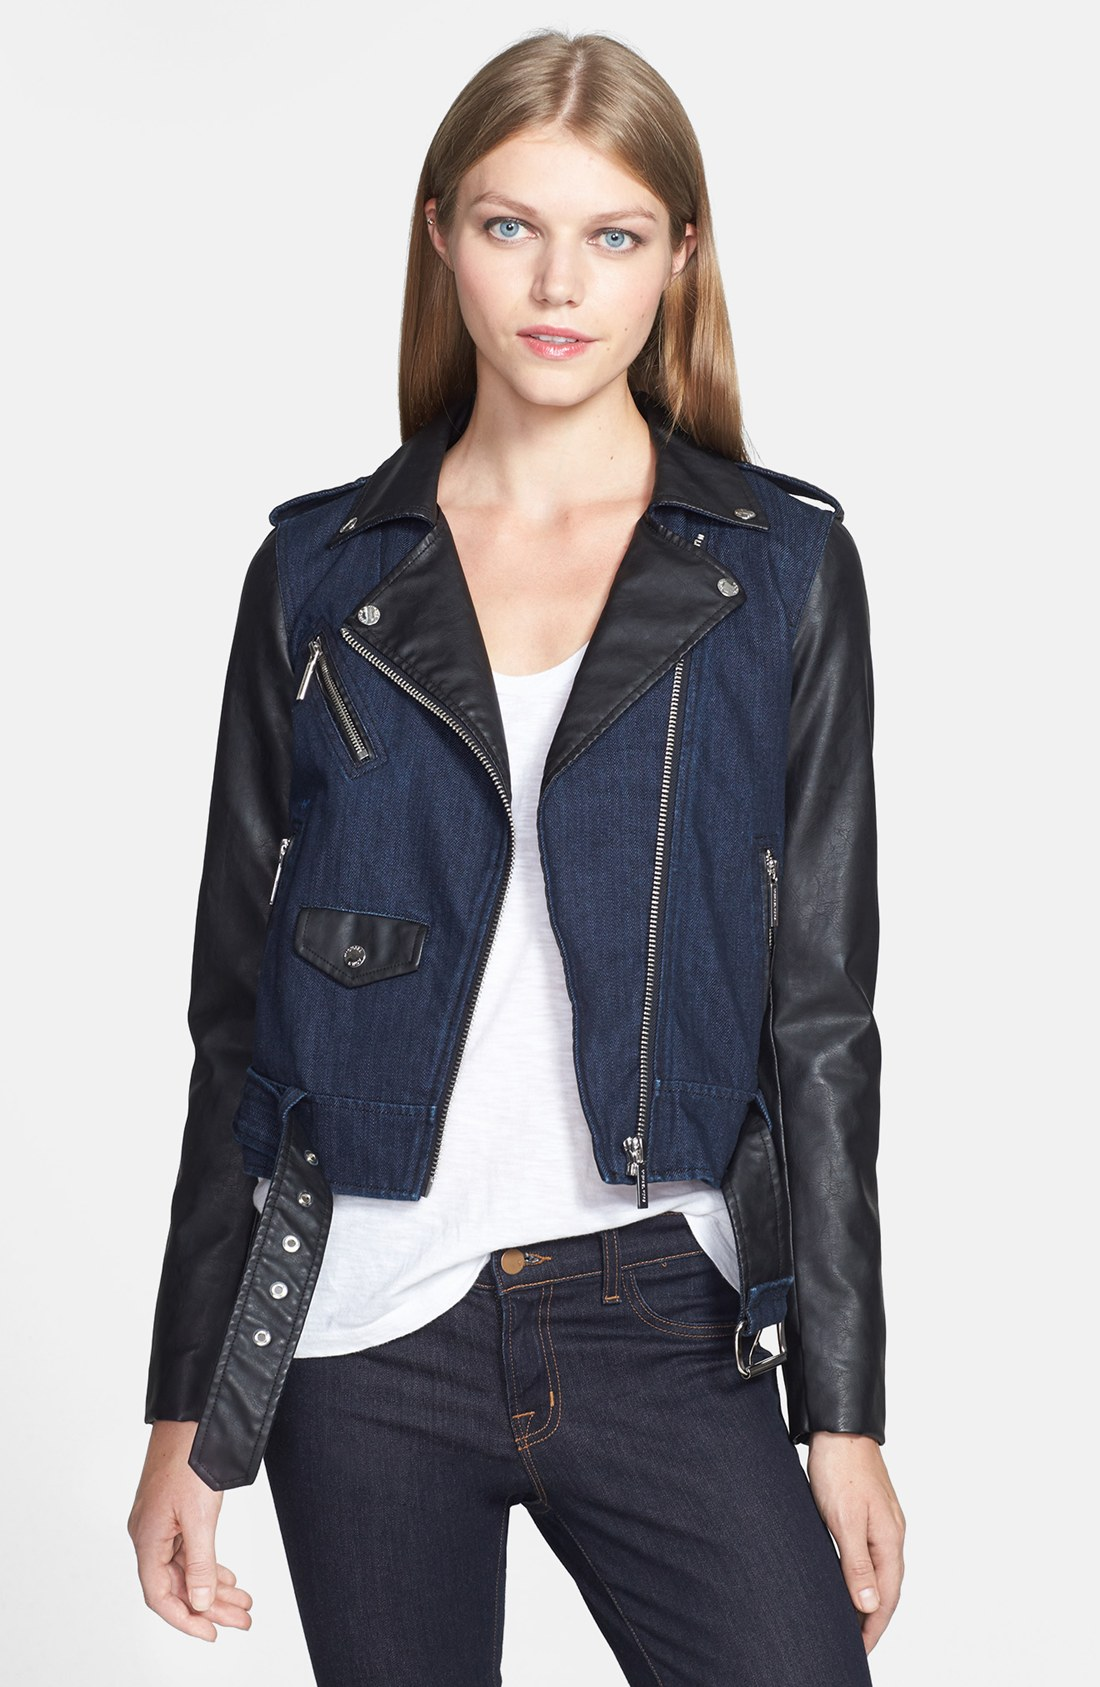 How to wash faux leather jacket